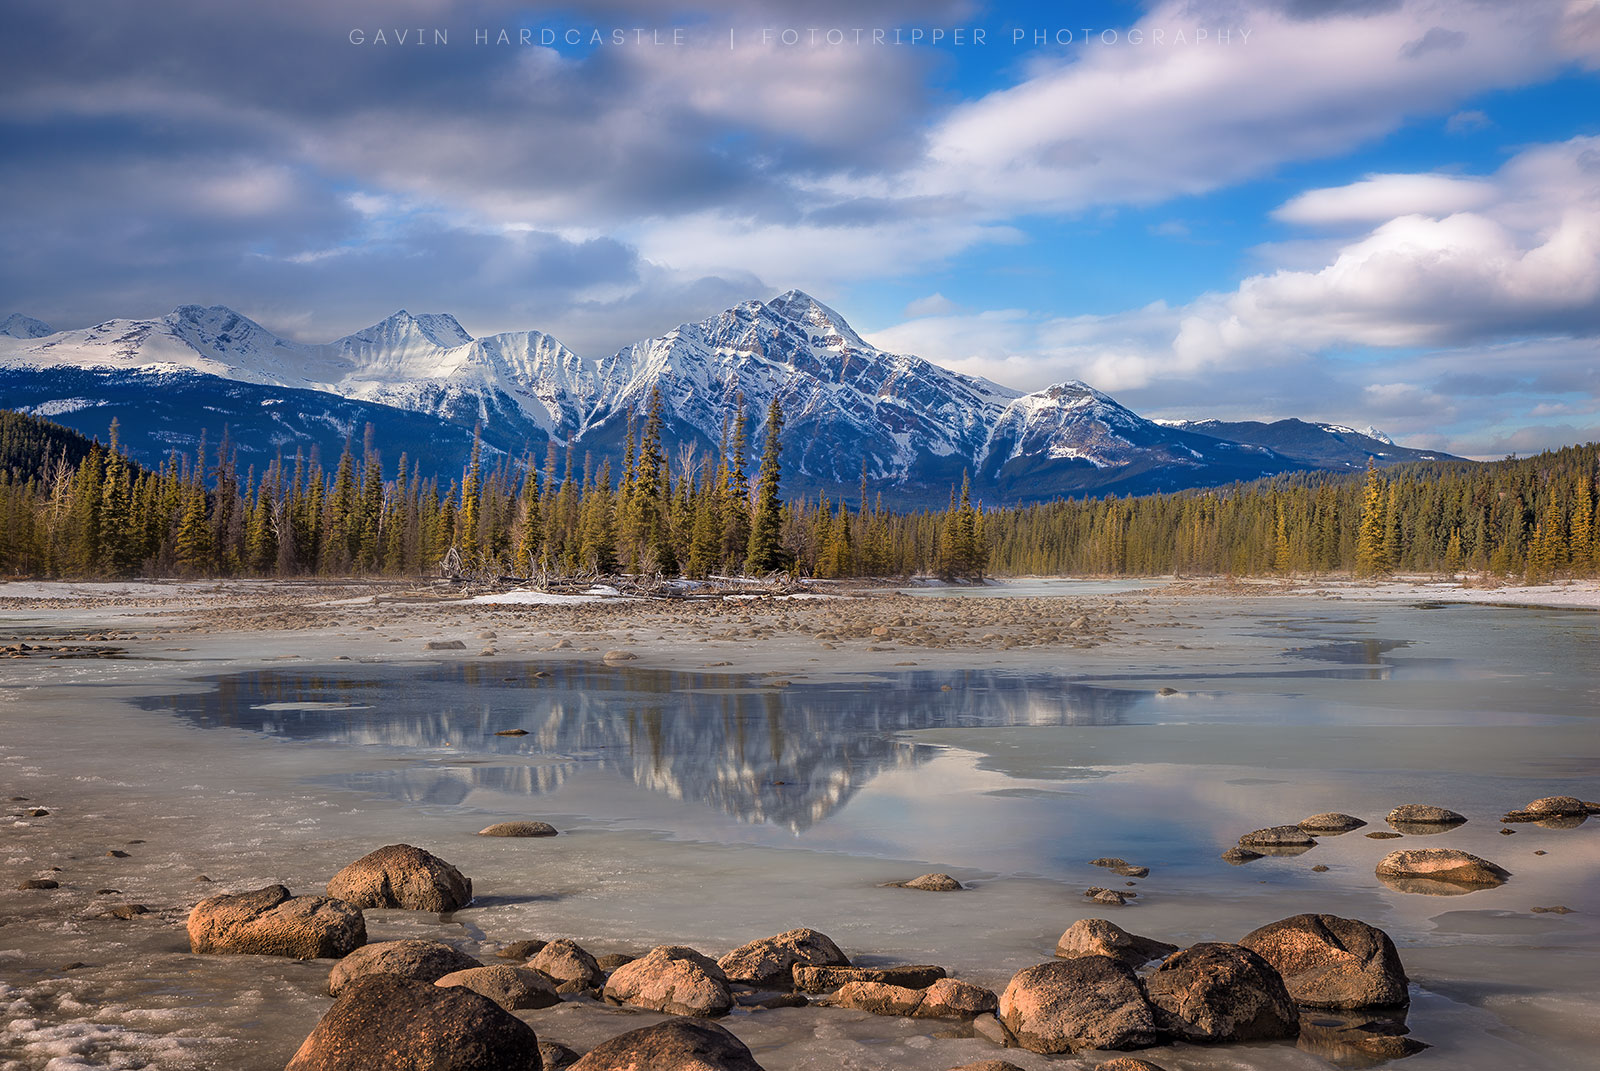 Pyramid Mountain and the Athabasca River in Jasper National Park